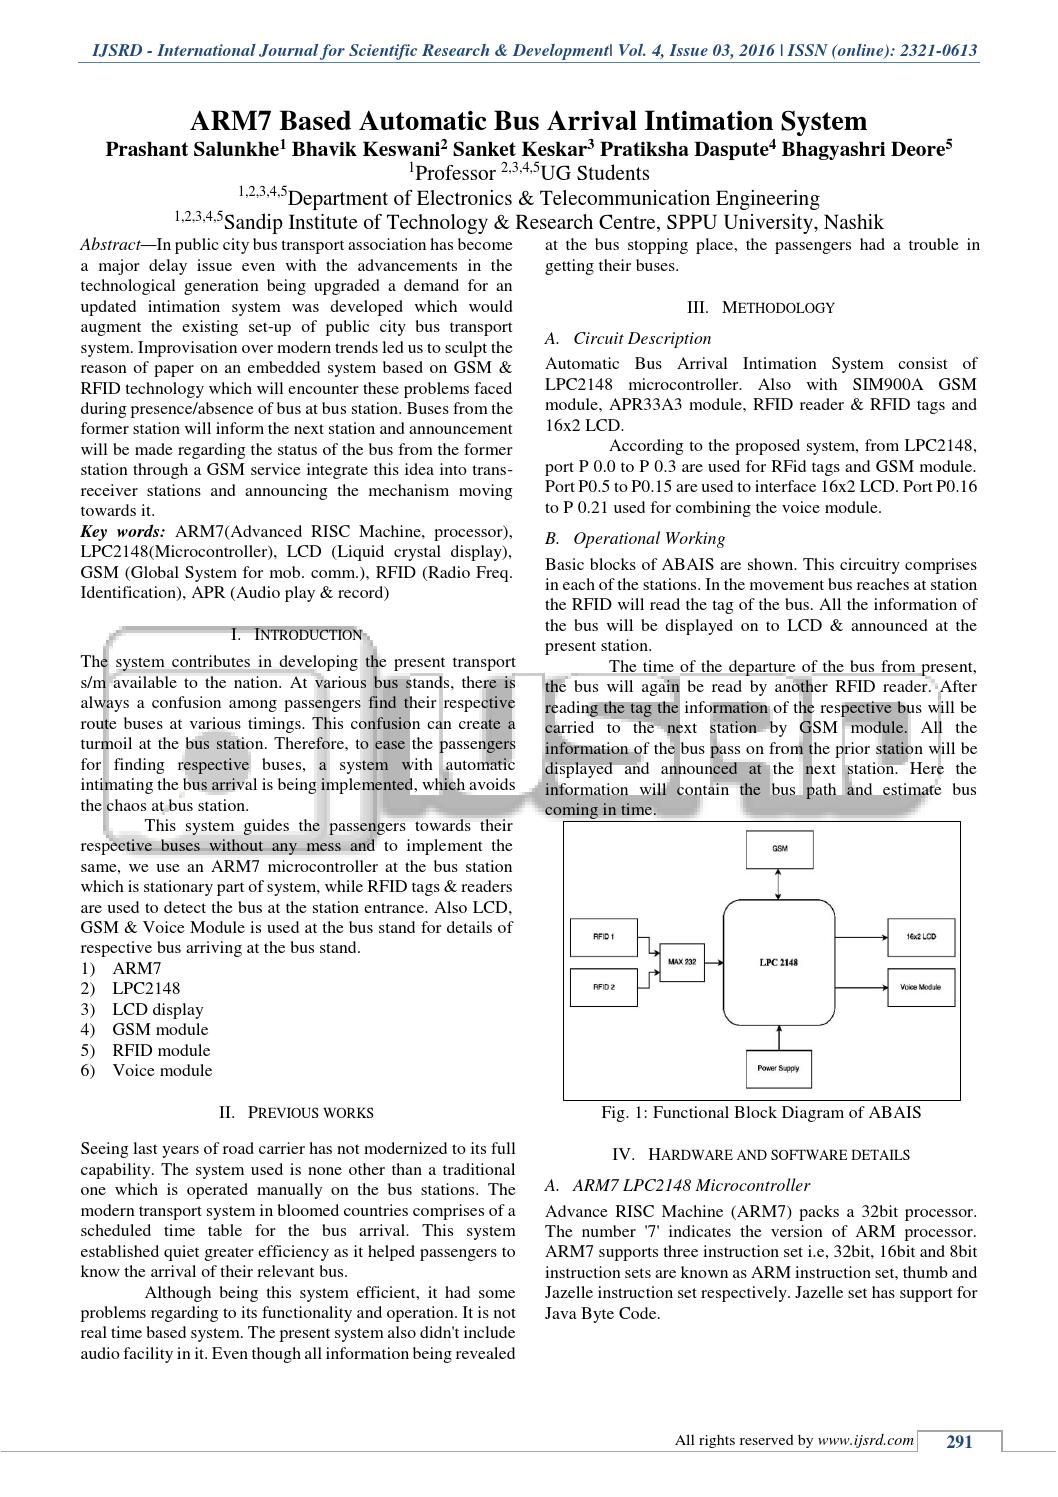 ARM7 Based Bus Arrival Intimation System by International Journal